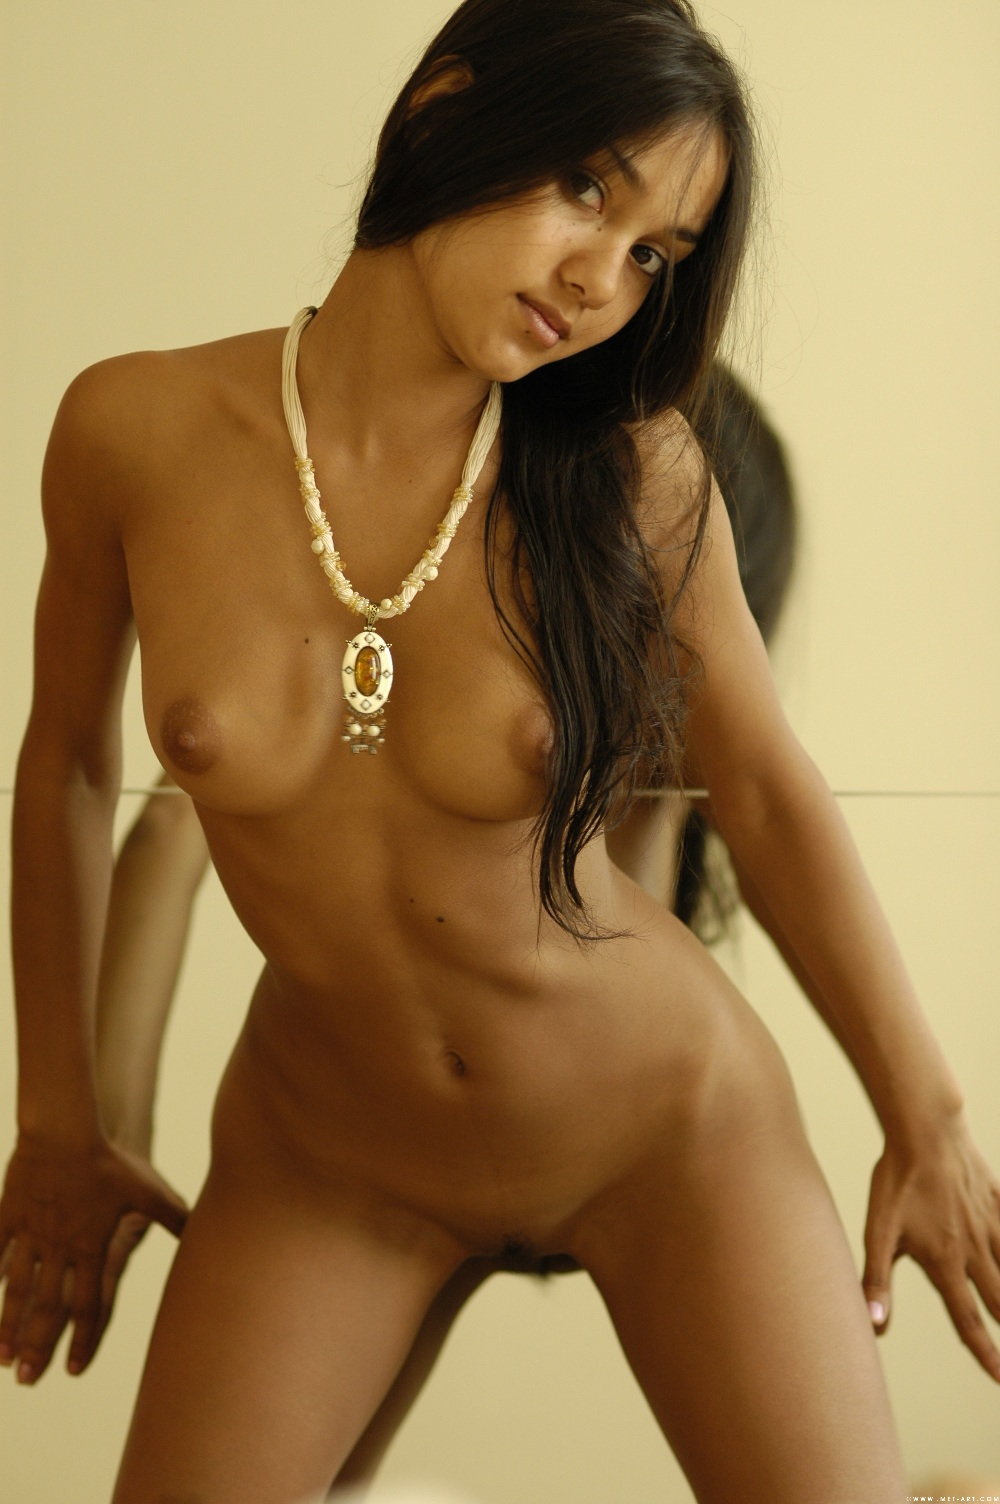 dark skinned indians women nude